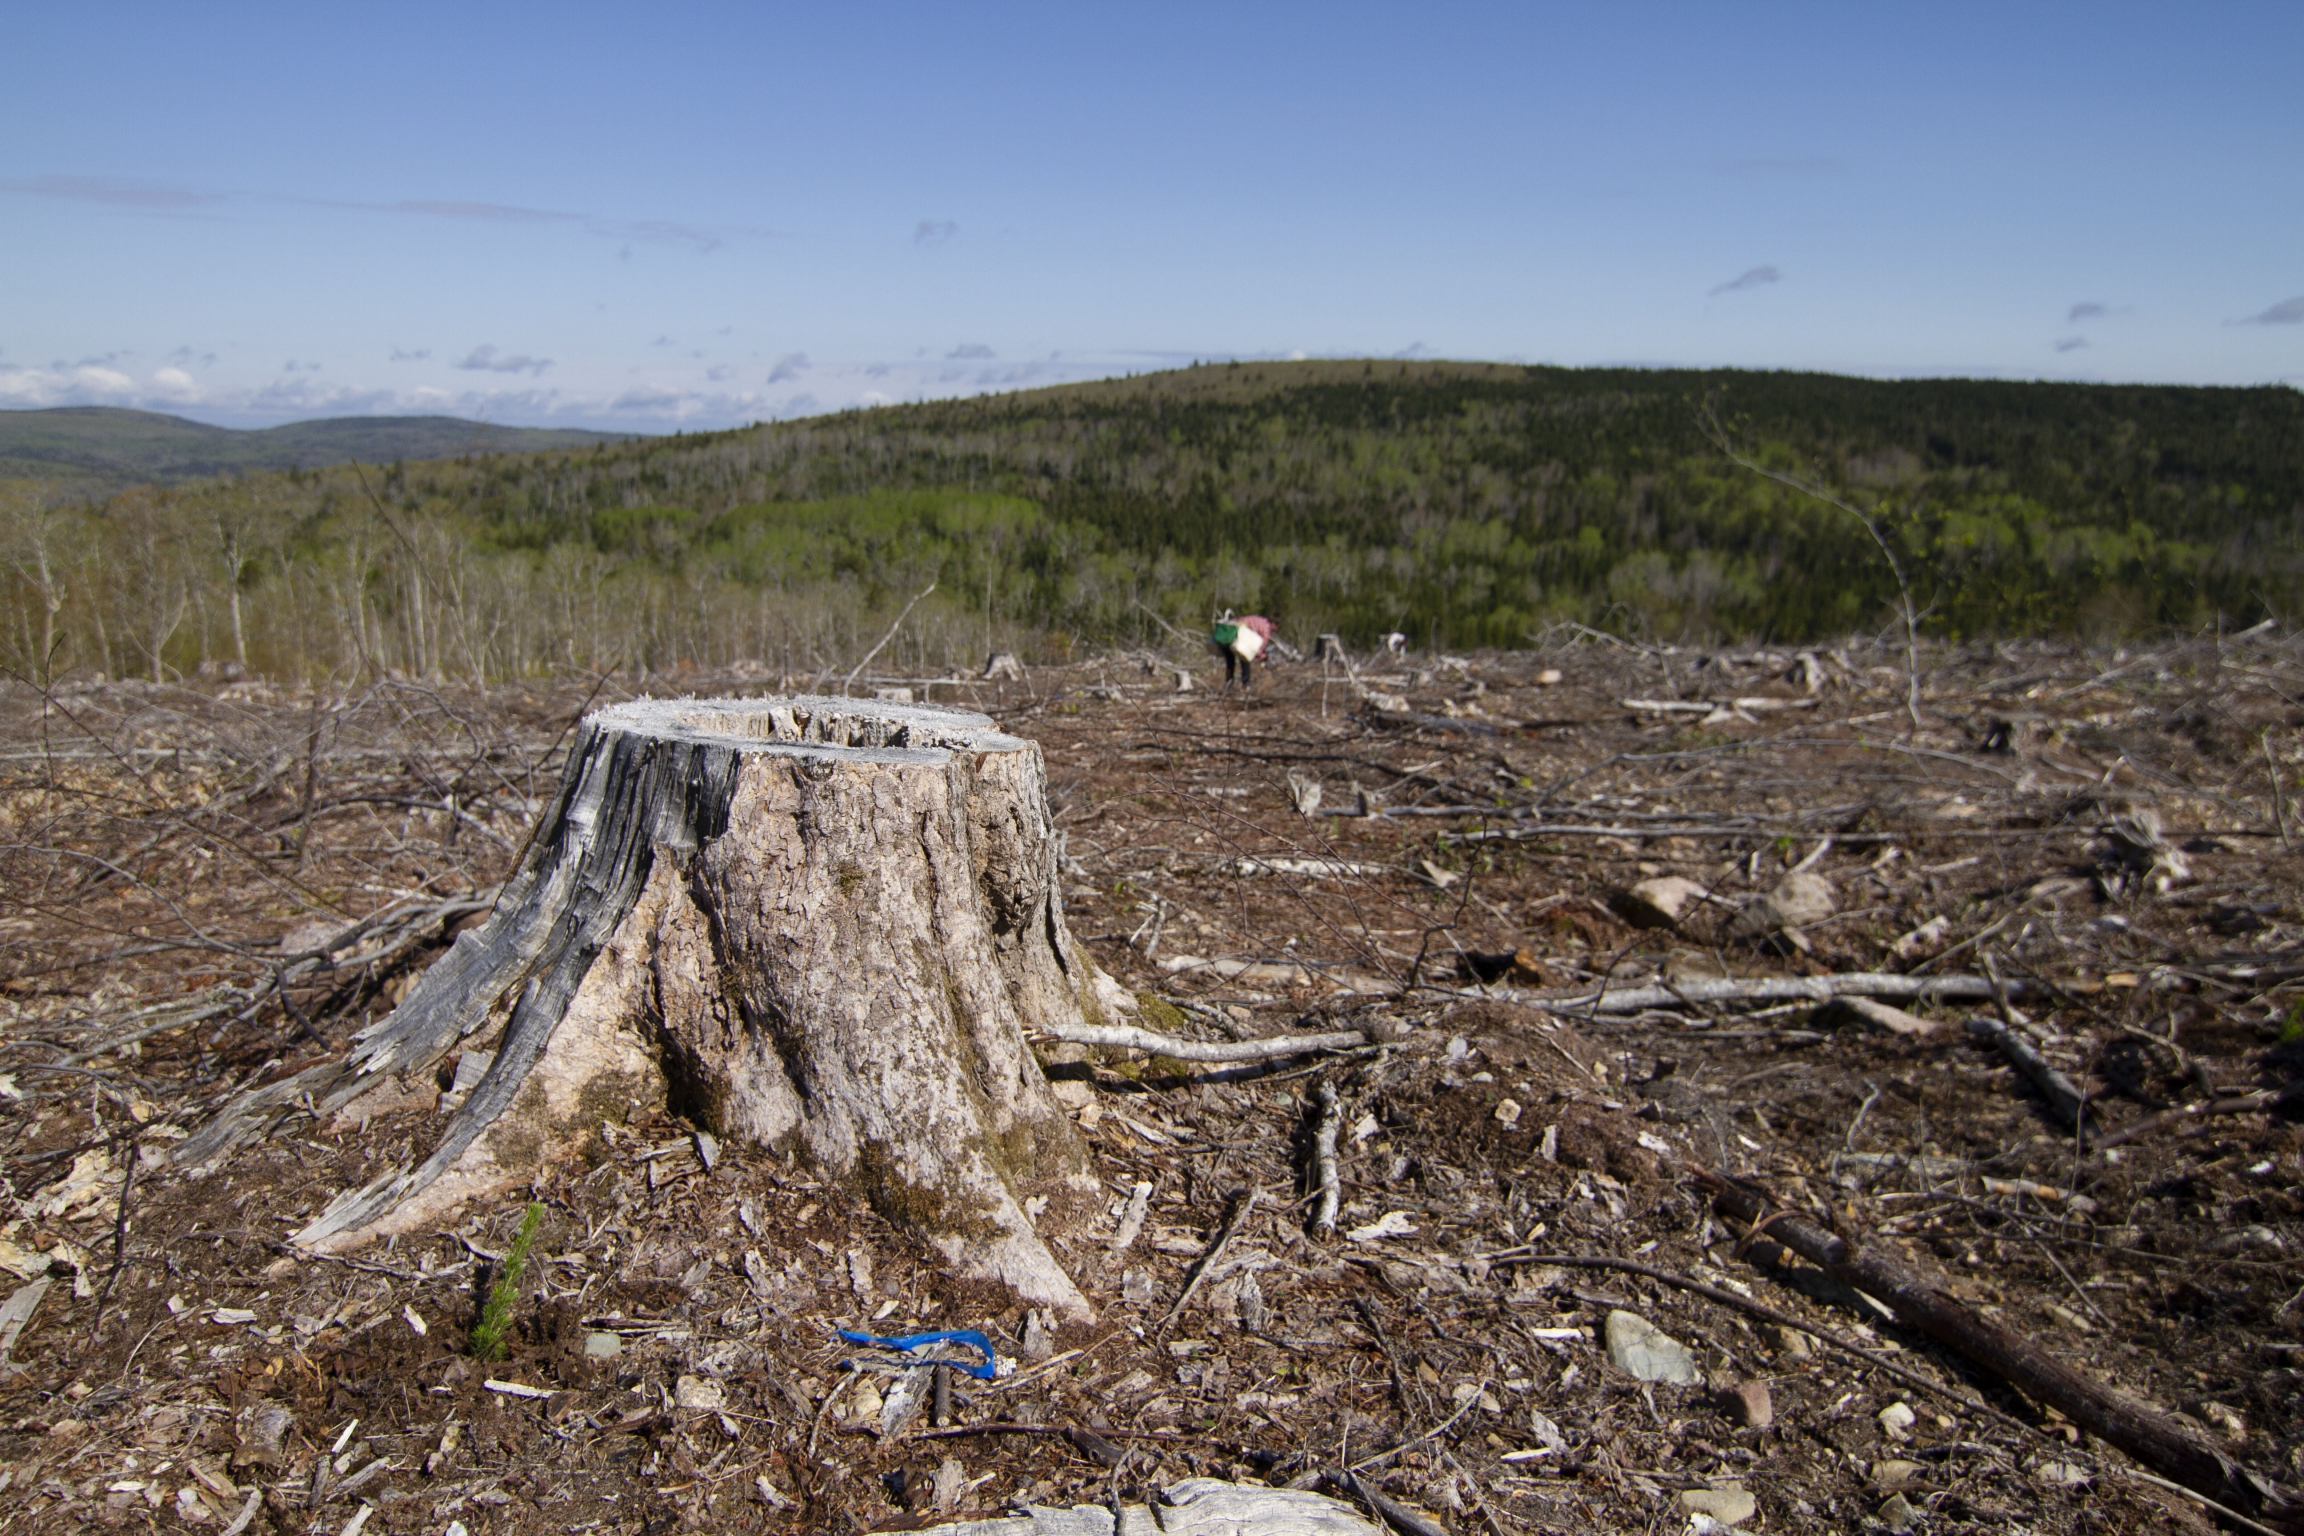 Much of the Maritimes forests are clear cut for timber sales. Community Forests International wants to break that cycle of forest management and provide landowners with an alternative way of getting income from their woods through carbon offsets.